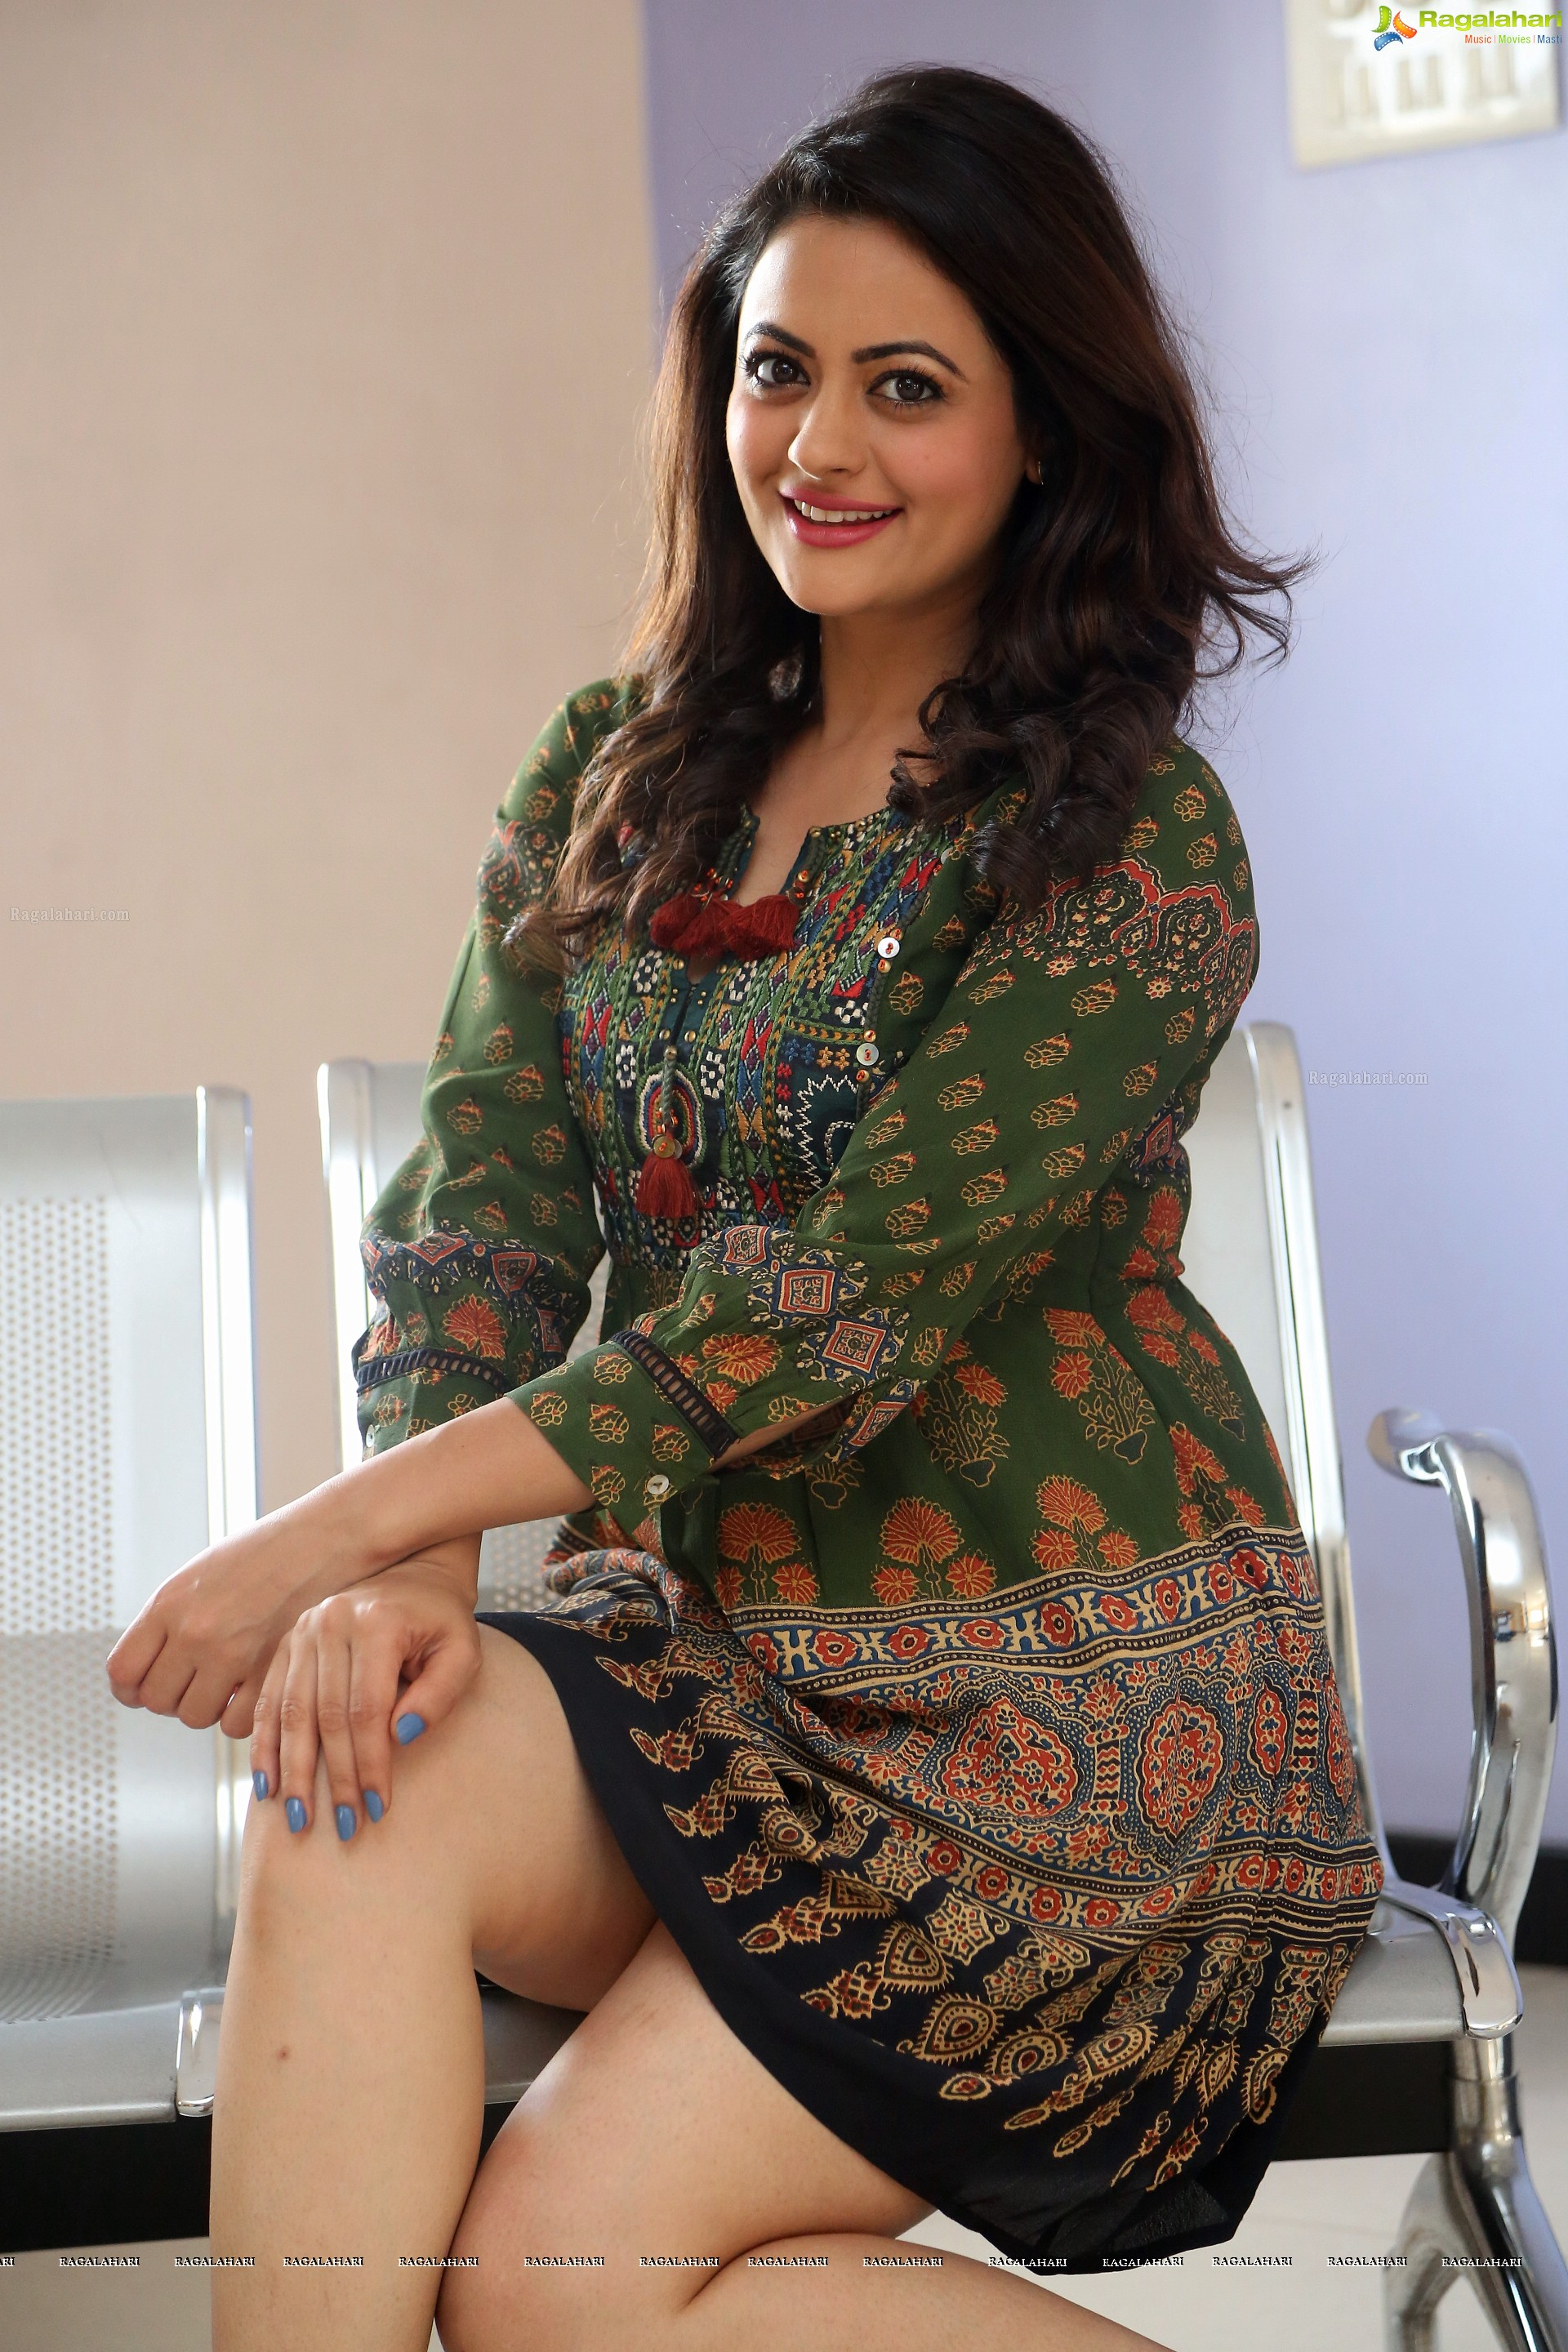 Shruti Sodhi (HD) Image 70 | Tollywood Actress Images,Images, Photos ...